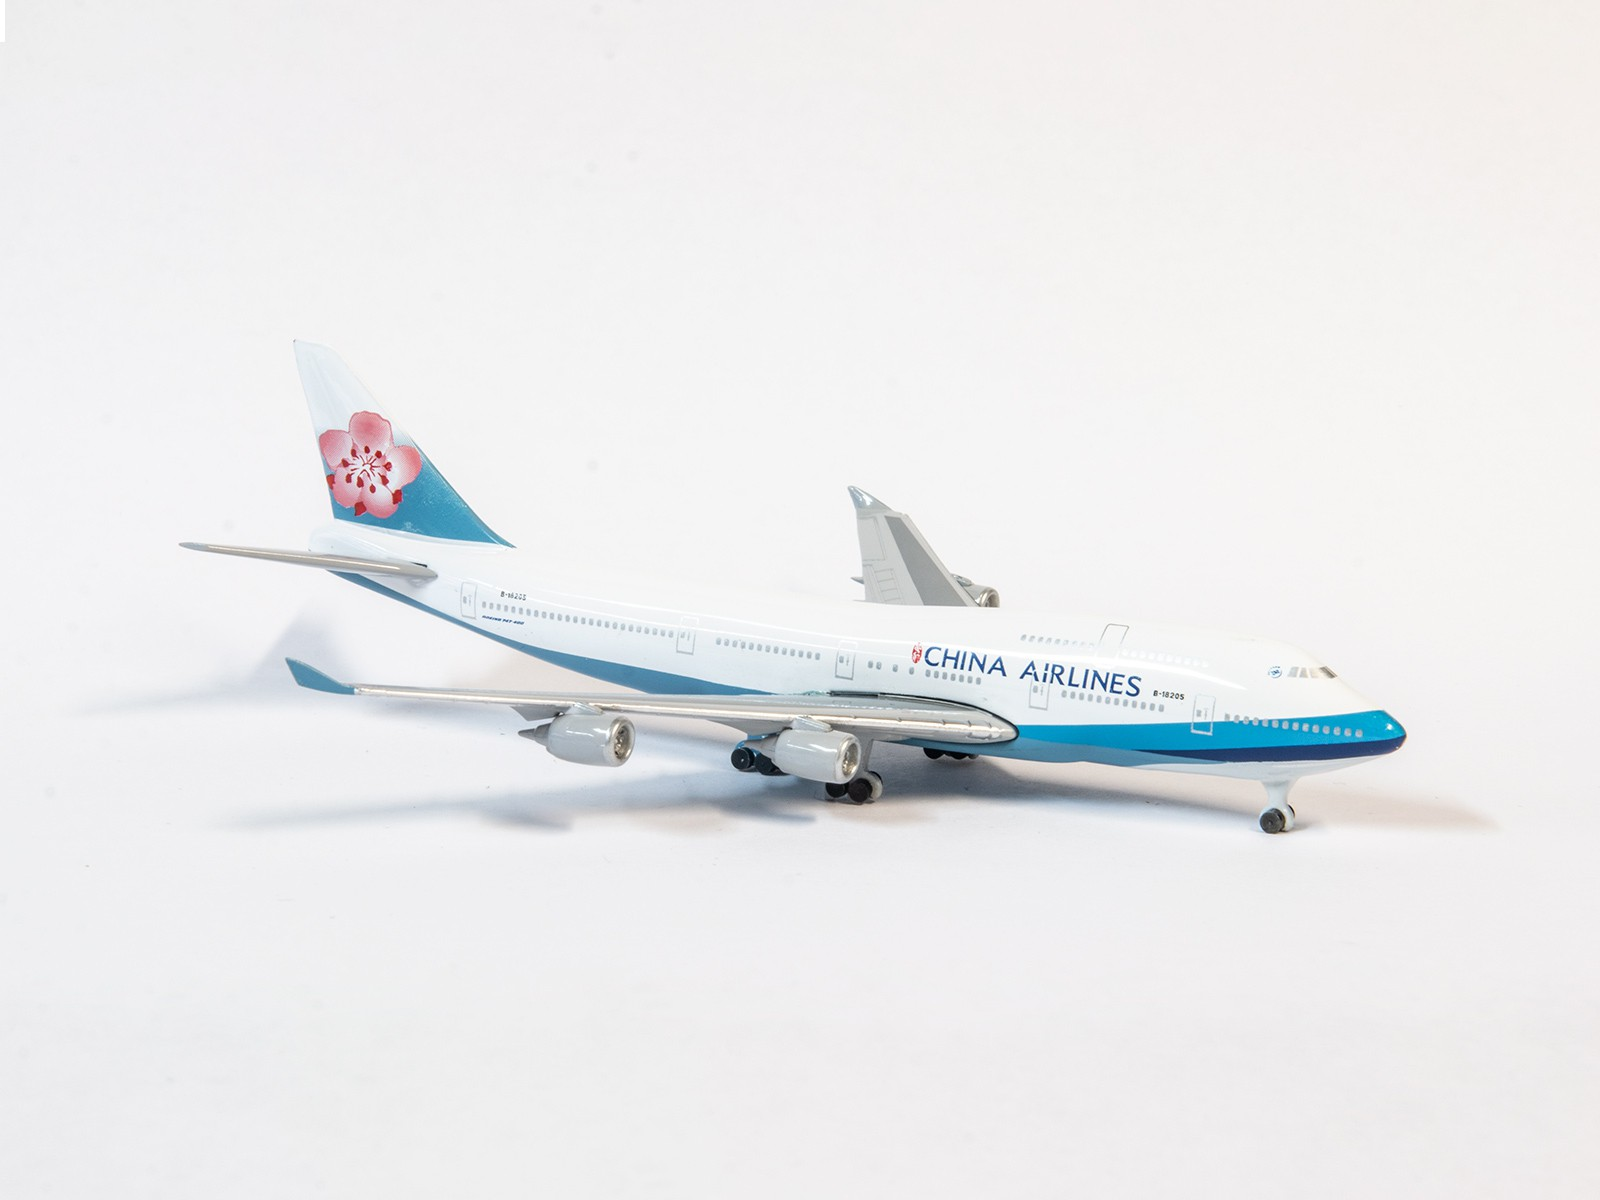 Schuco 55157 Boeing 747 China Airlines  1:600